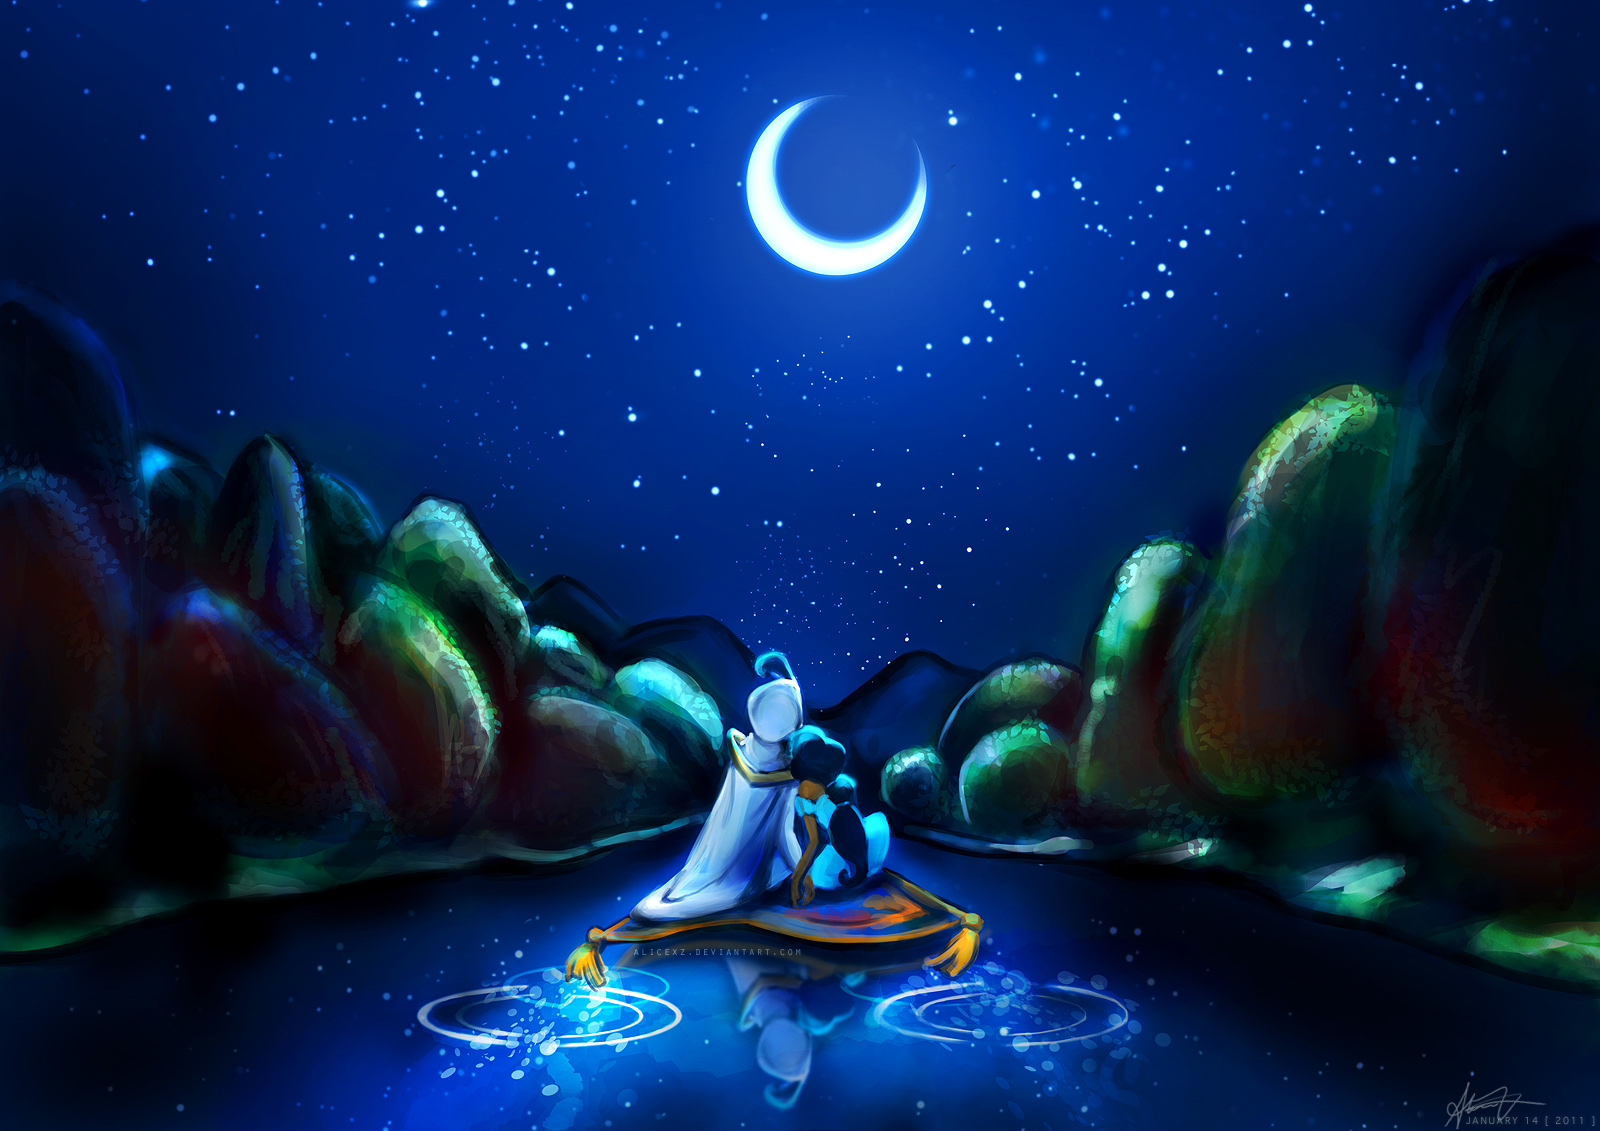 Aladdin Wallpaper and Background Image | 1600x1131 | ID:332301 for Aladdin Wallpaper Iphone  117dqh